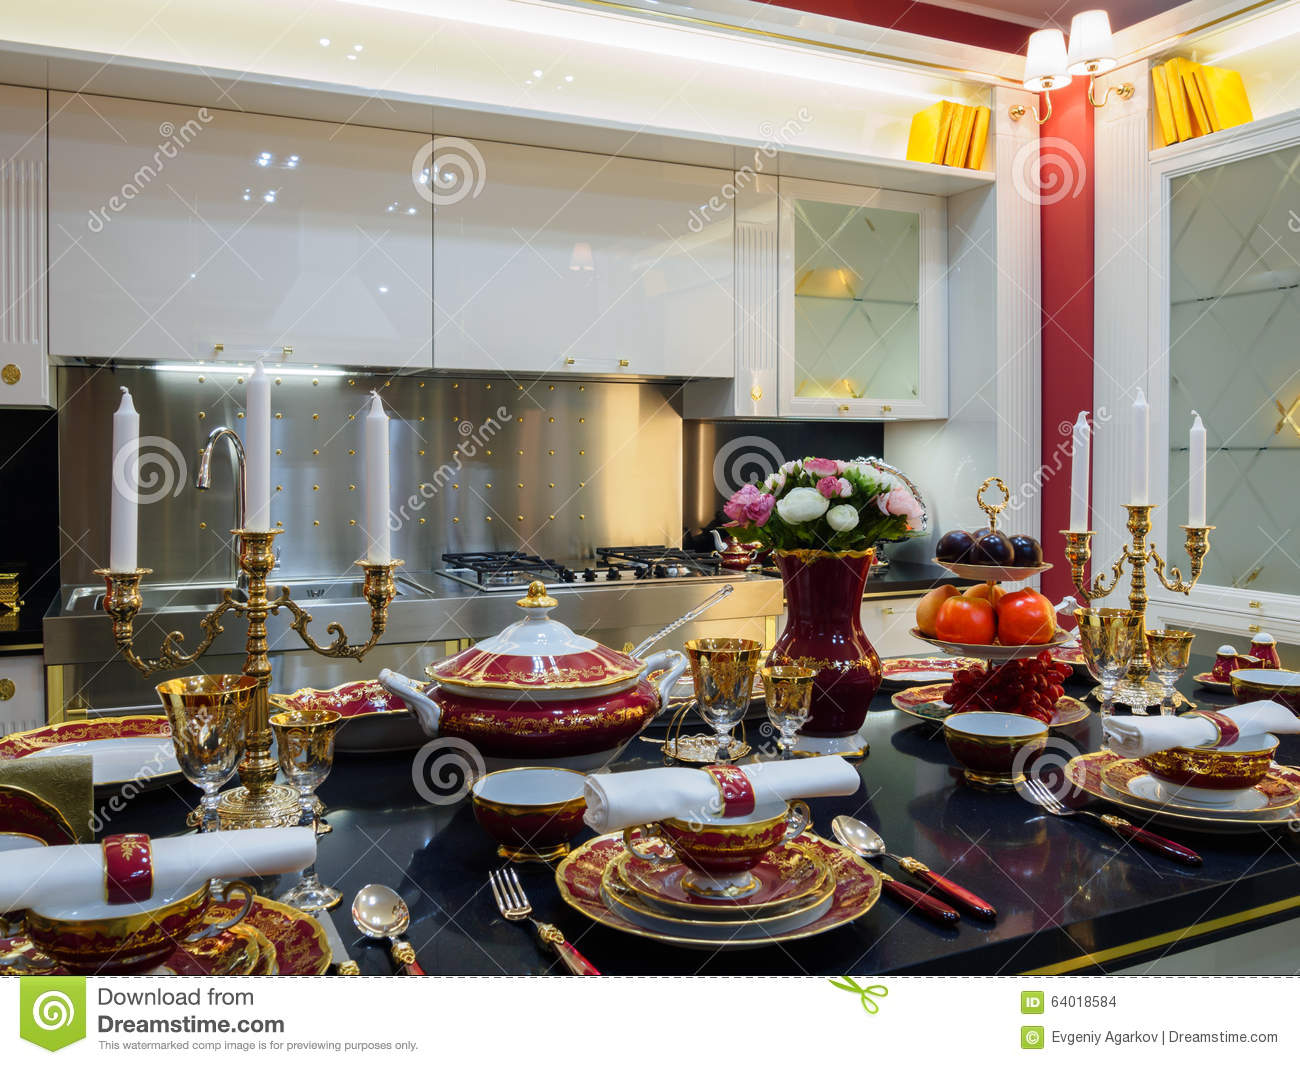 modern luxury kitchen with accessories stock photo image of empty